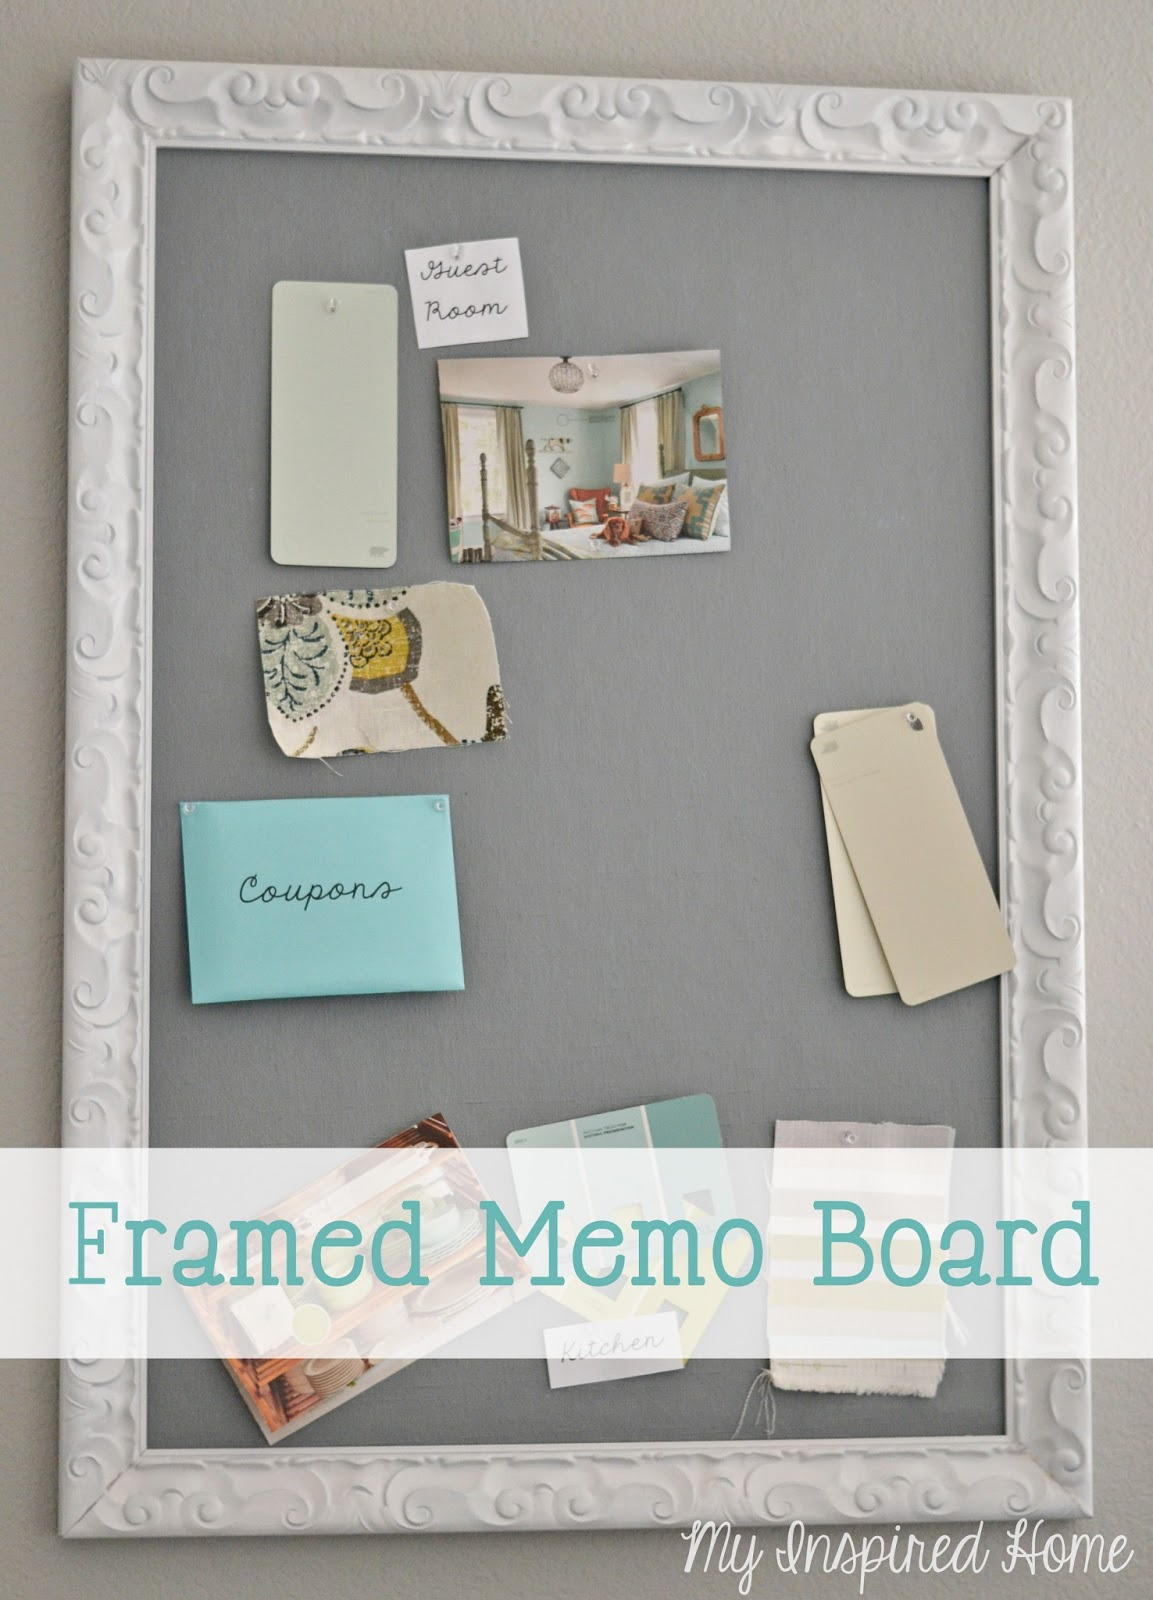 my inspired home diy framed memo board in an effort to get more organized and to clear out some closet space i wanted to use this frame to make a memo board for my office a ridiculous work in